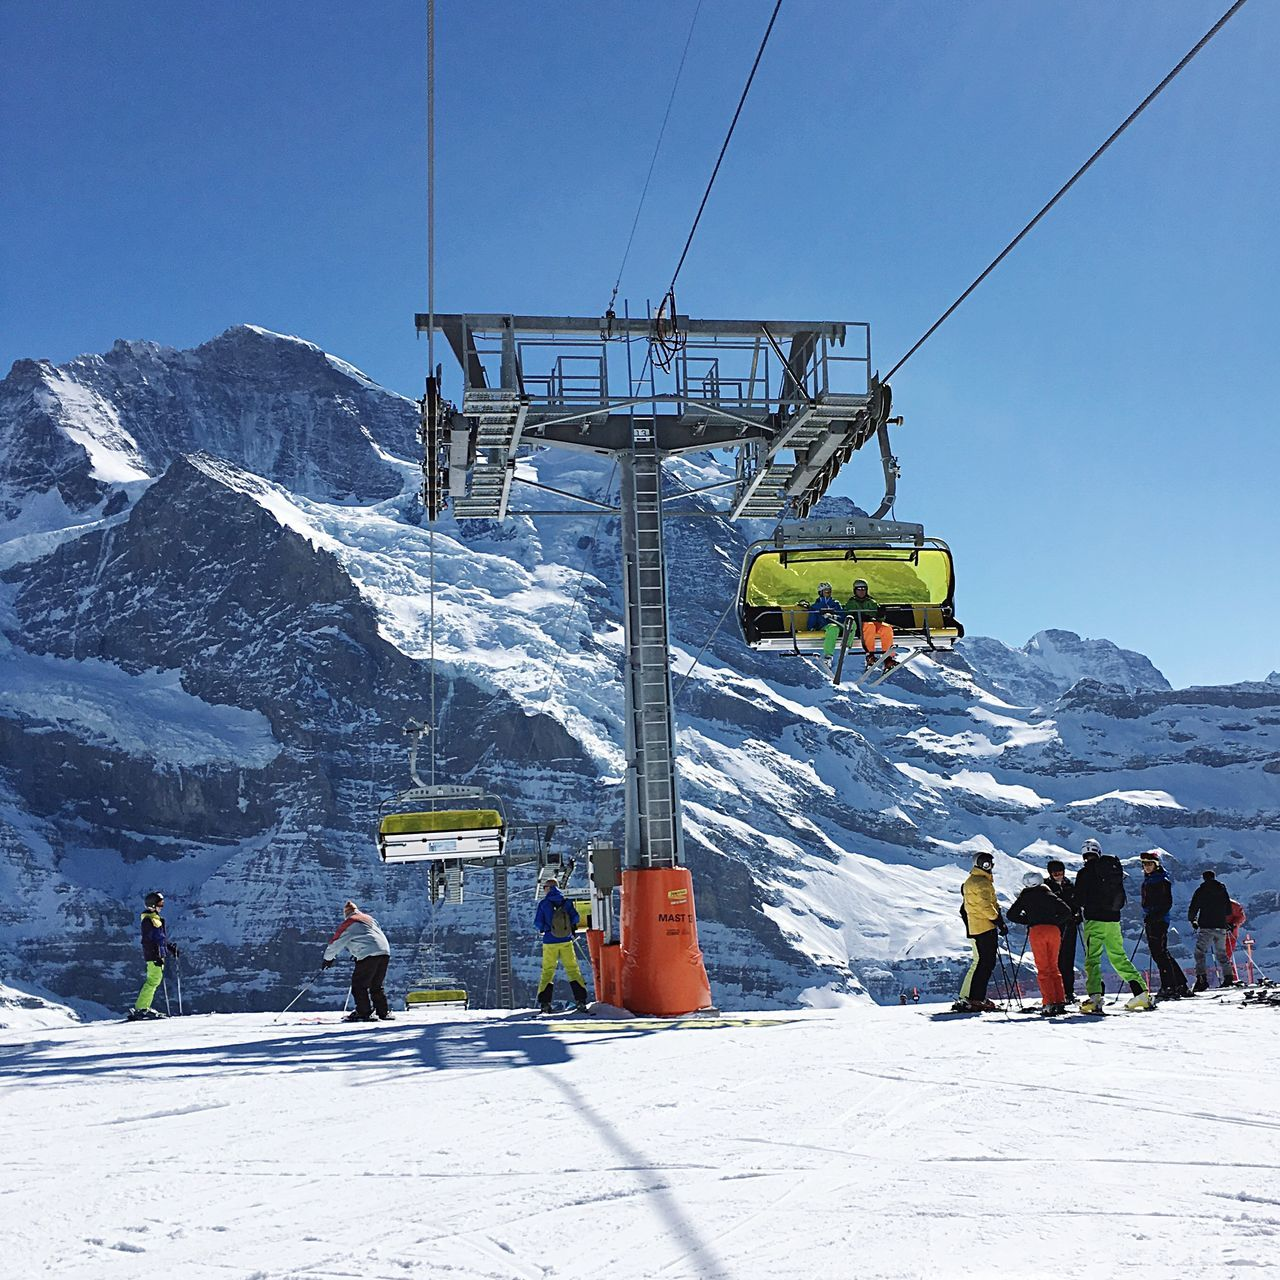 Ski lift, mountains and skiers in Wengen, Switzerland. Switzerland skiing Skiing Ski Lift Mountains Alps Holiday Wengen First Eyeem Photo